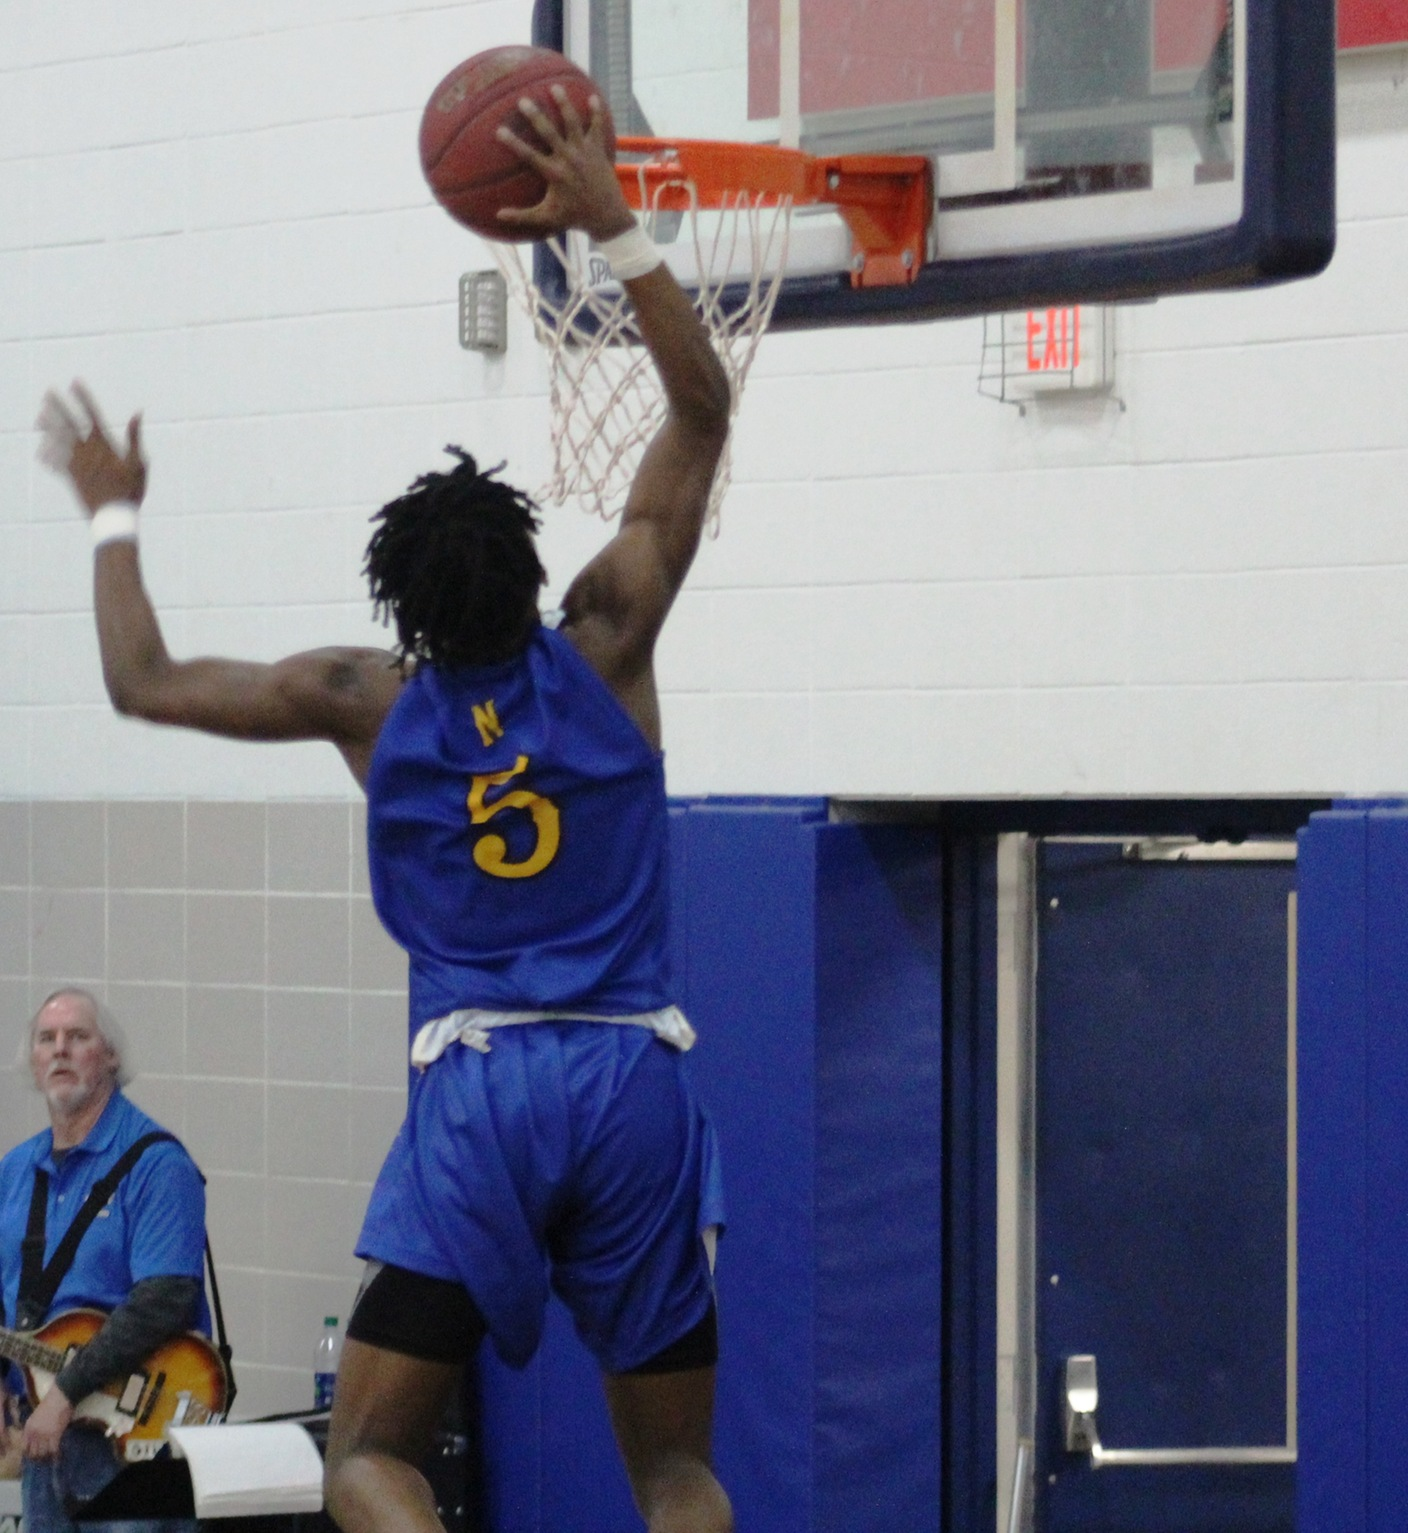 Quentin Hardrict dunks for 2 of his career-high 37 points in Wednesday's win over DMACC.